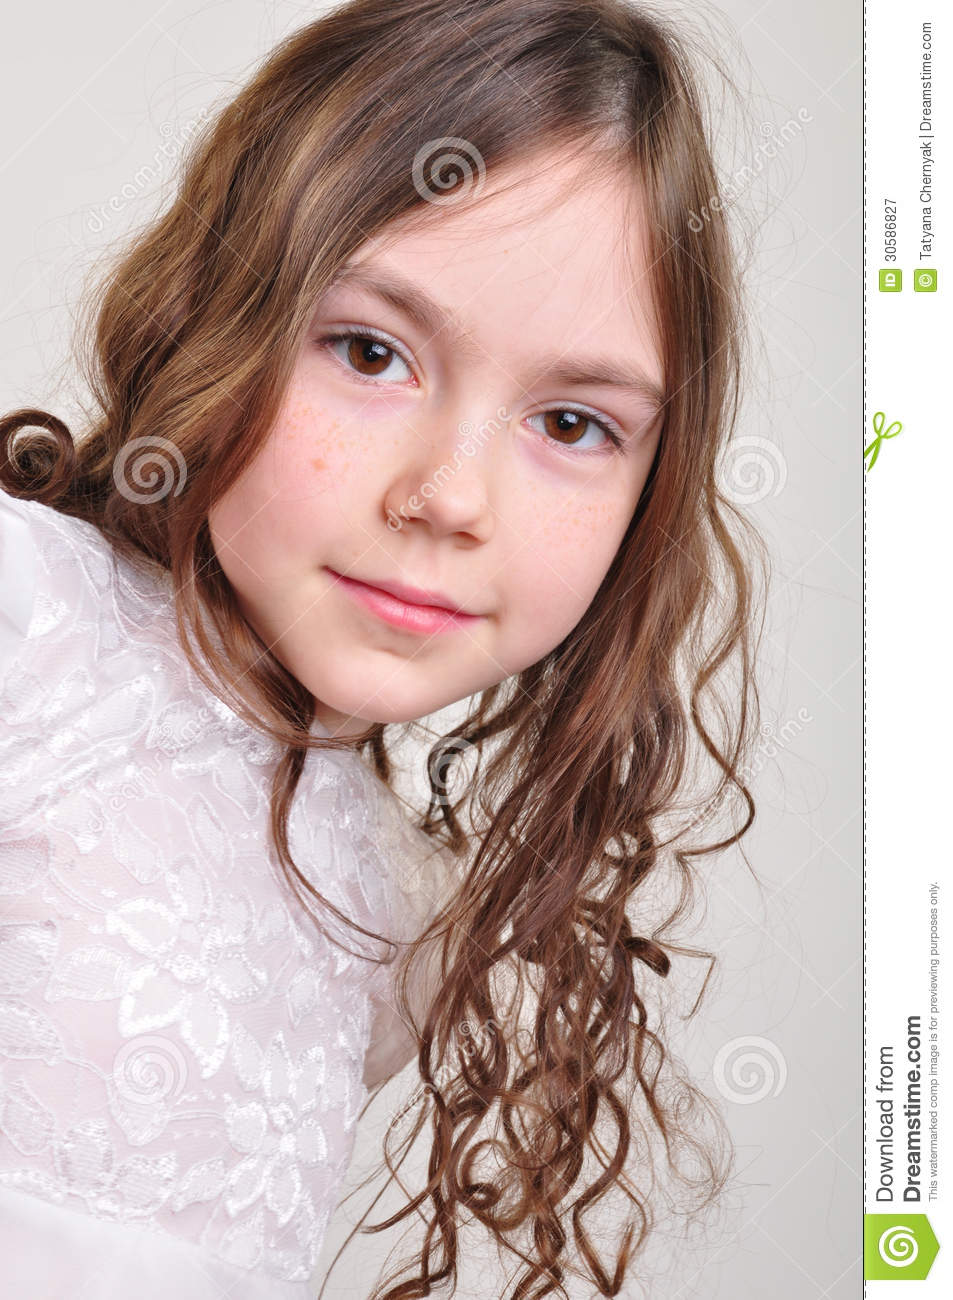 Pretty 8 Year Old Girl In White Dress Royalty Free Stock